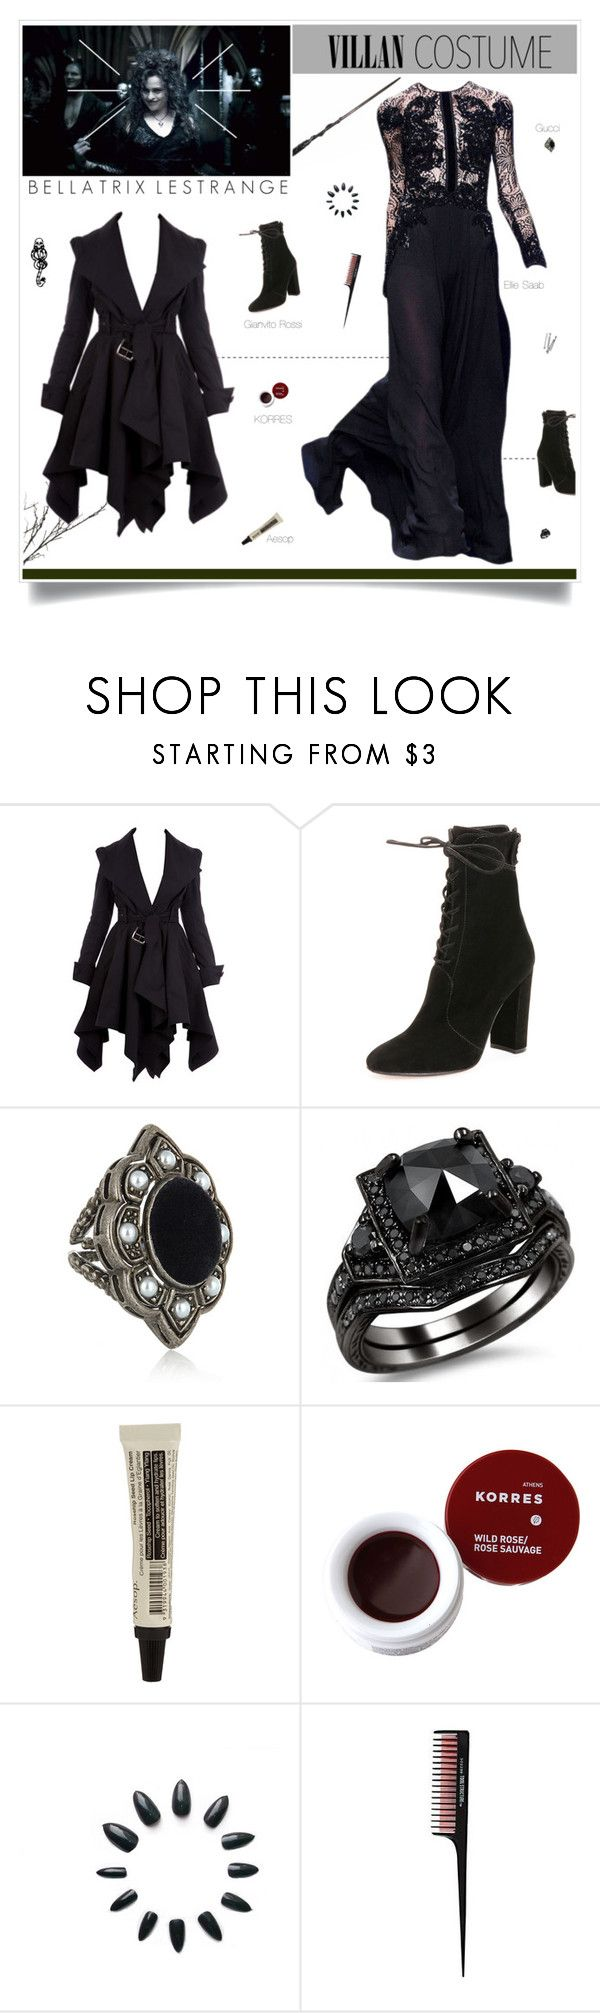 """""""Bellatrix Lestrange Costume"""" by amberelb ❤ liked on Polyvore featuring Gianvito Rossi, Gucci, BOBBY, Aesop, Korres and mark."""